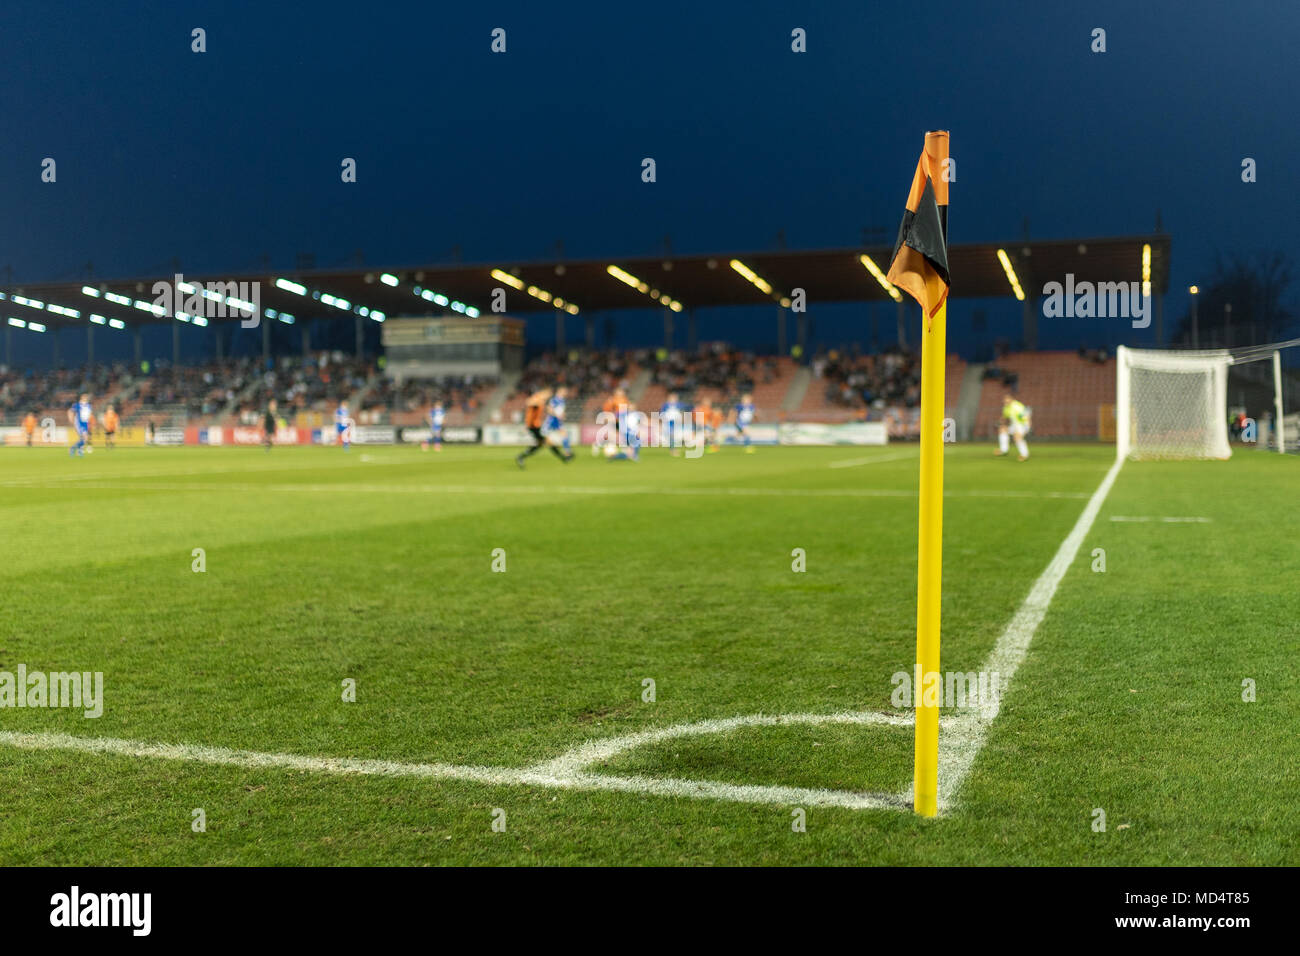 Corner flag at the football pitch, in the background players in action. - Stock Image